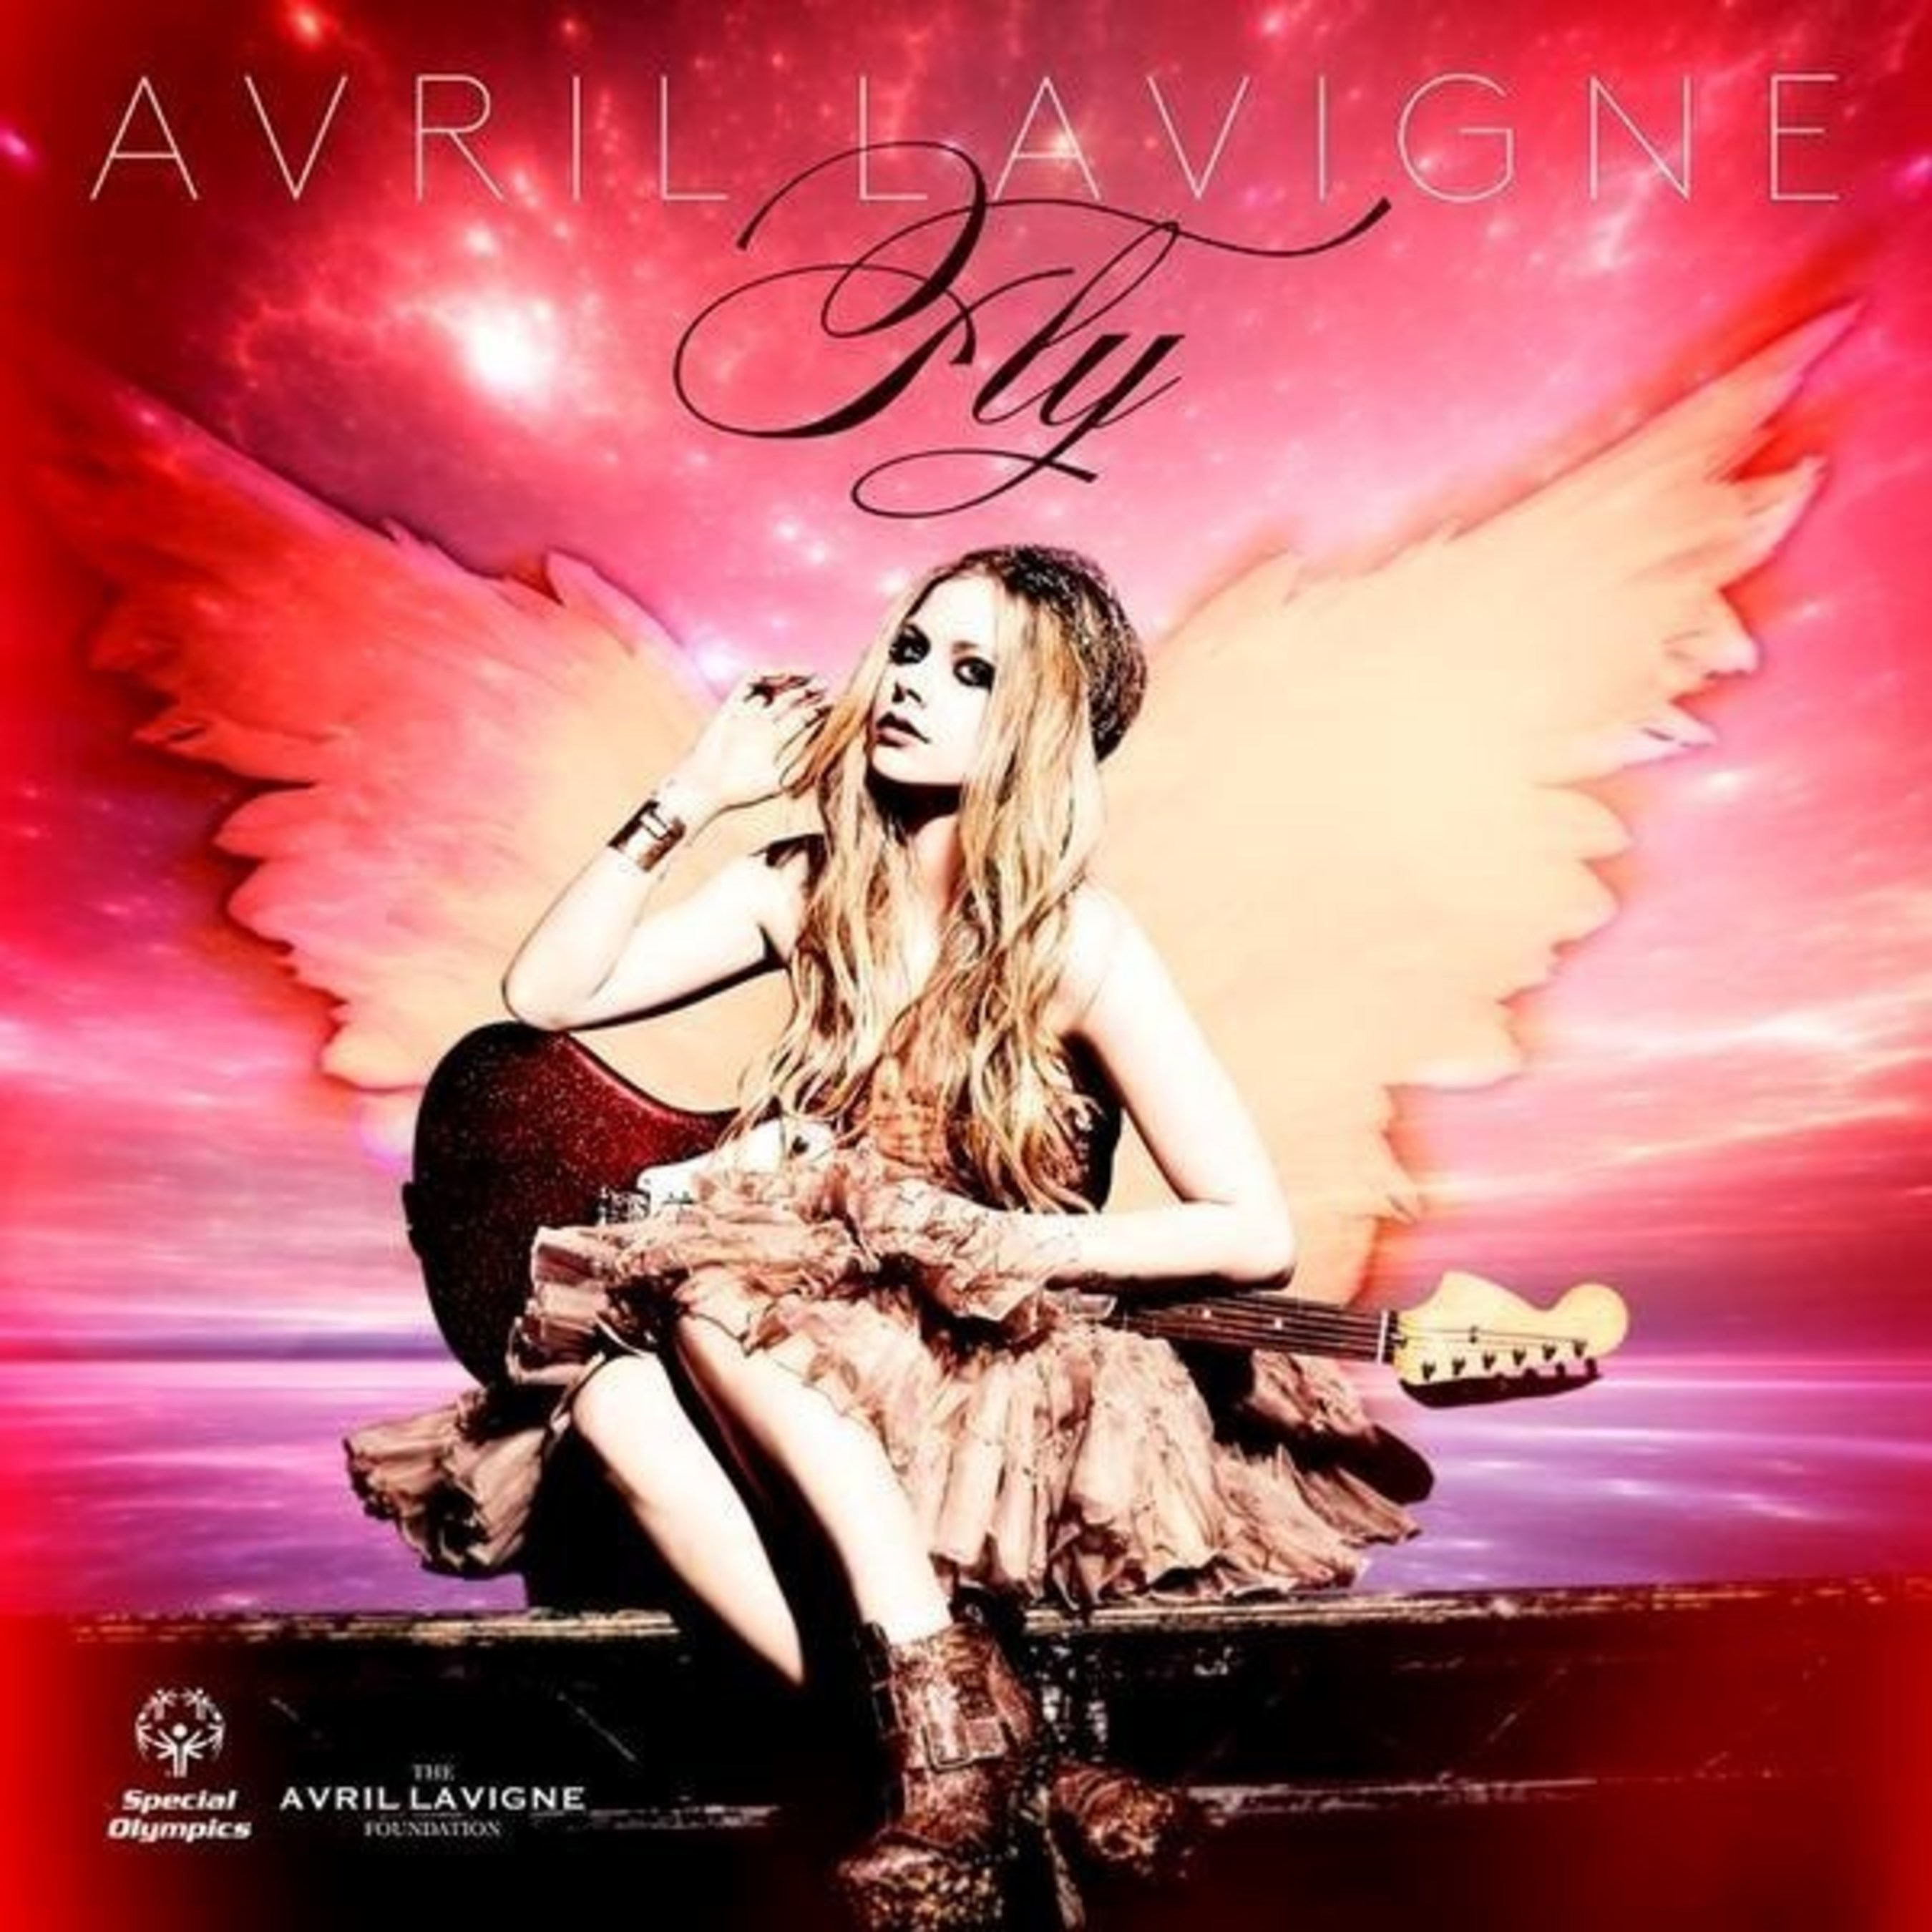 Avril Lavigne Releases New Single 'Fly' And Music Video To Benefit Special Olympics